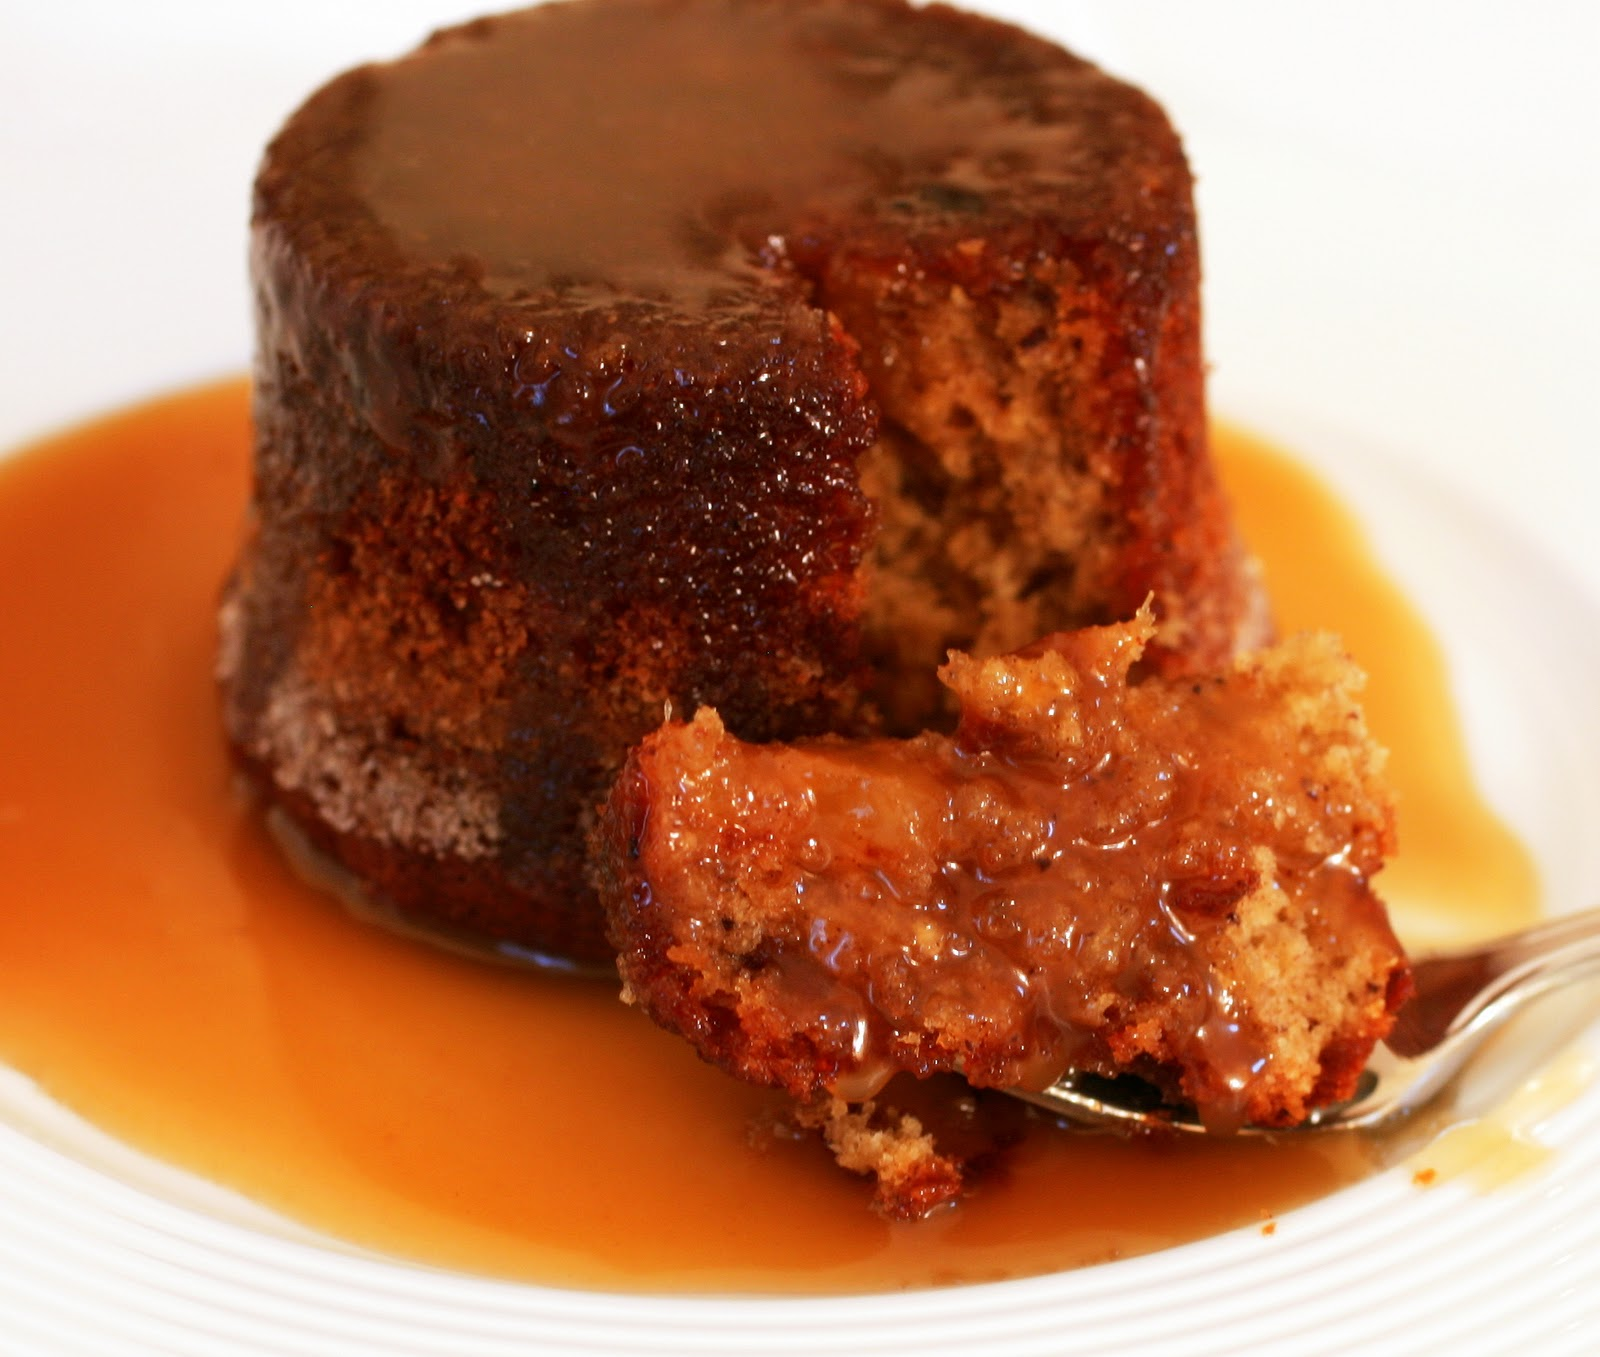 Tish Boyle Sweet Dreams: Sticky Toffee Pudding